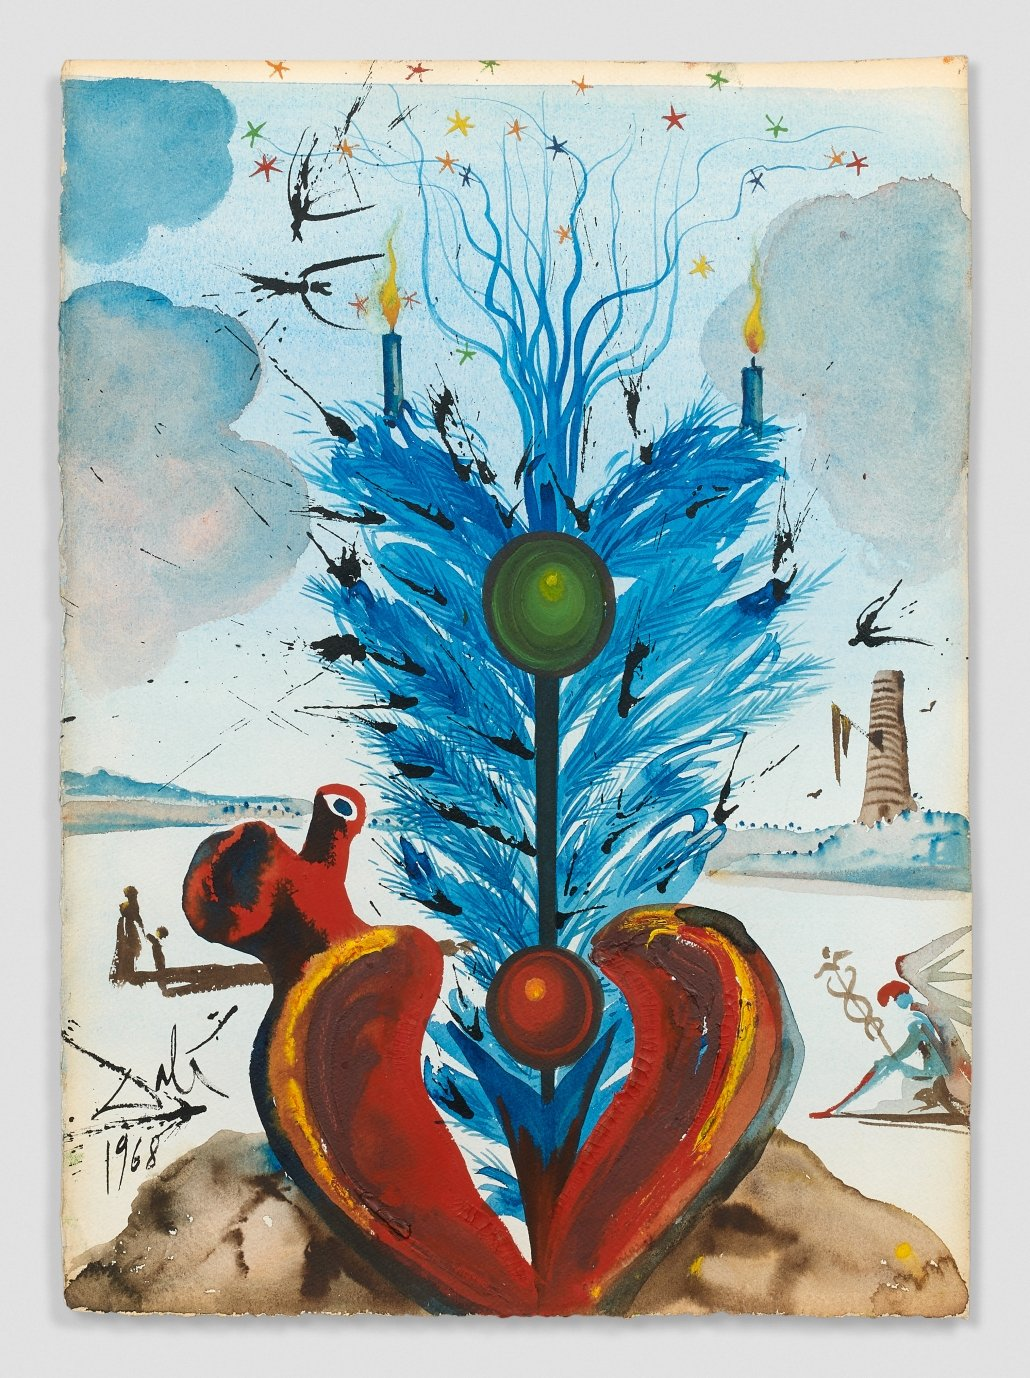 Salvador Dalí, Coeur (Corazon), 1968, Watercolor, gouache and India Ink on paper; signed and dated lower left, 43,80 x 31,30 cm | Estimate: 60.000/90.000€ © Artcurial